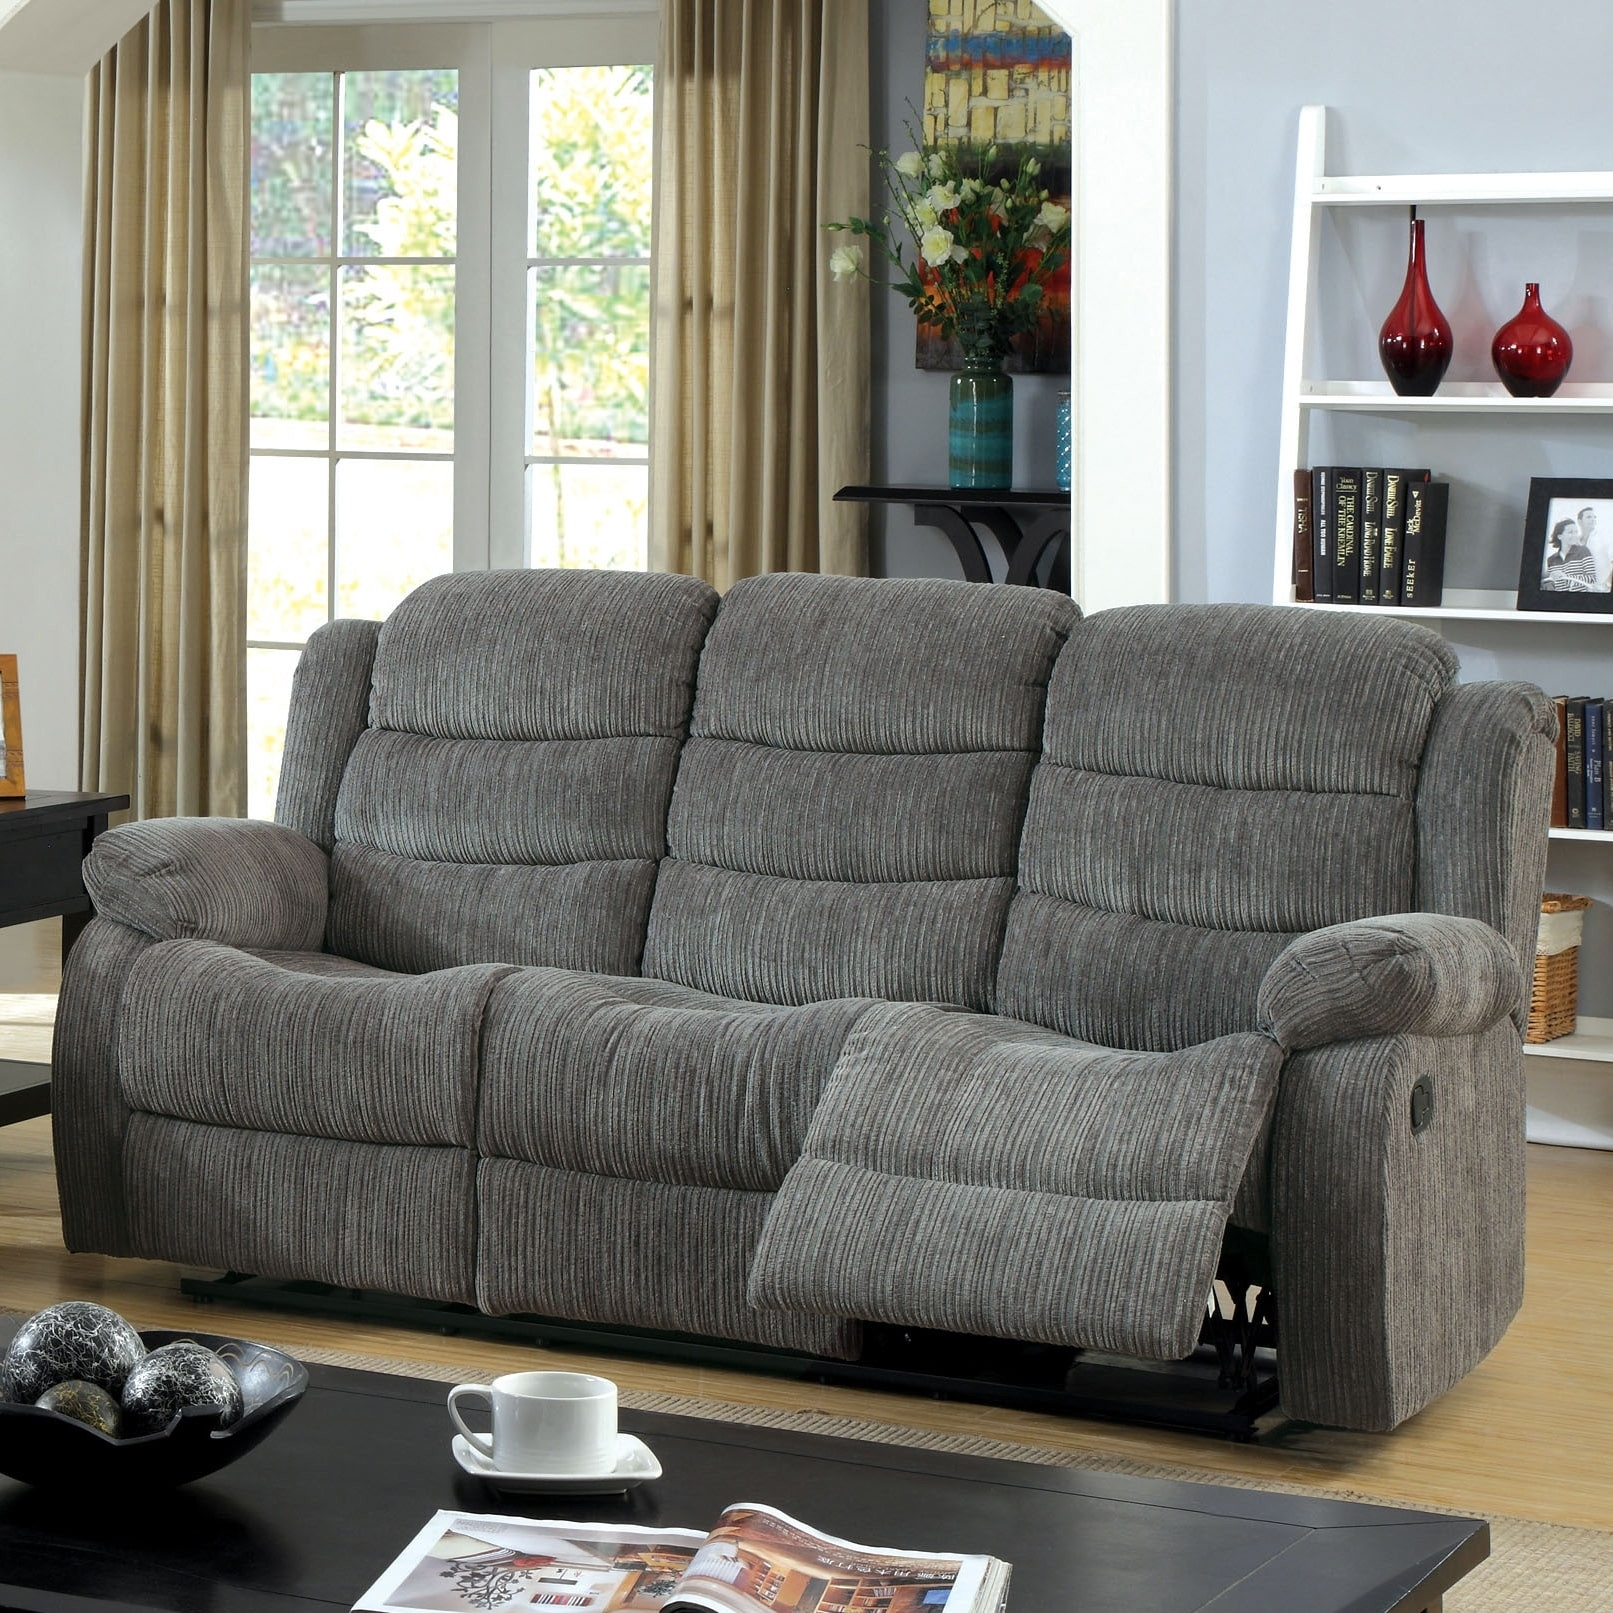 10 Unique American Furniture Warehouse Greensboro Nc | Home With Sectional Sofas In Greensboro Nc (Image 1 of 10)